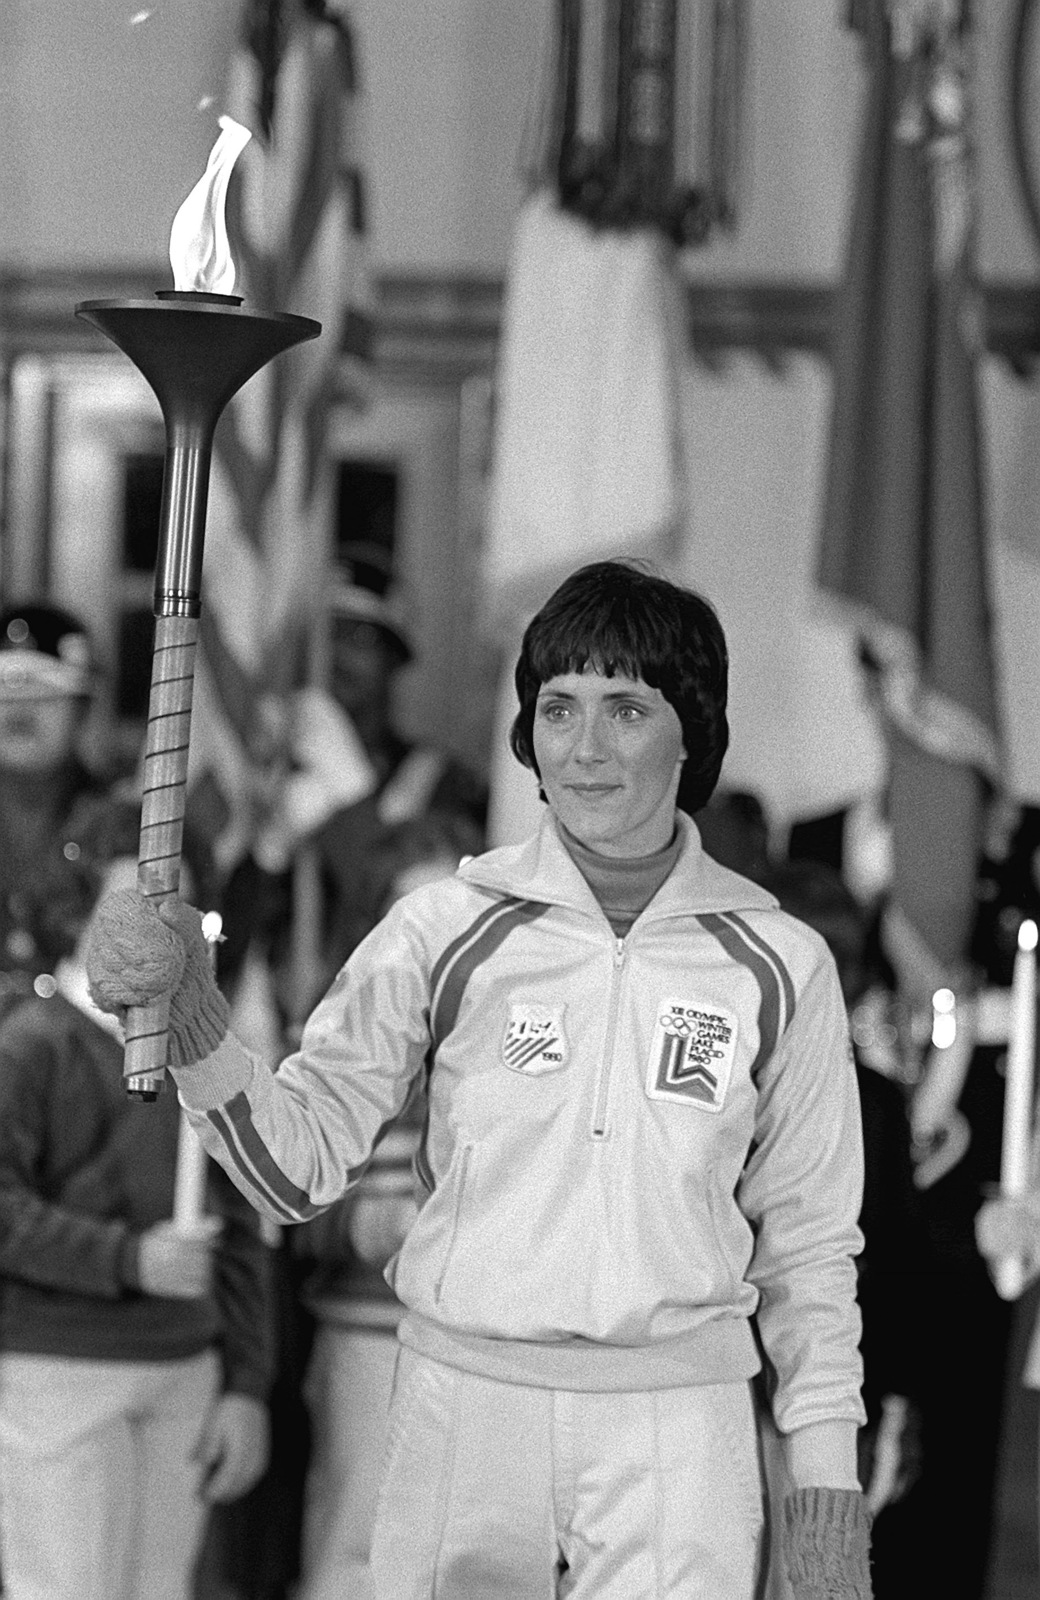 First Olympic torchbearer Sandy Norris, after her relay, stands at attention at the flame arrival ceremony. The flame, first ignited in Olympia, Greece, is carried in a series of 52 torchbearers in a 1,000-mile relay run from the base to Lake Placid, New York, to open the XIII Winter Olympics